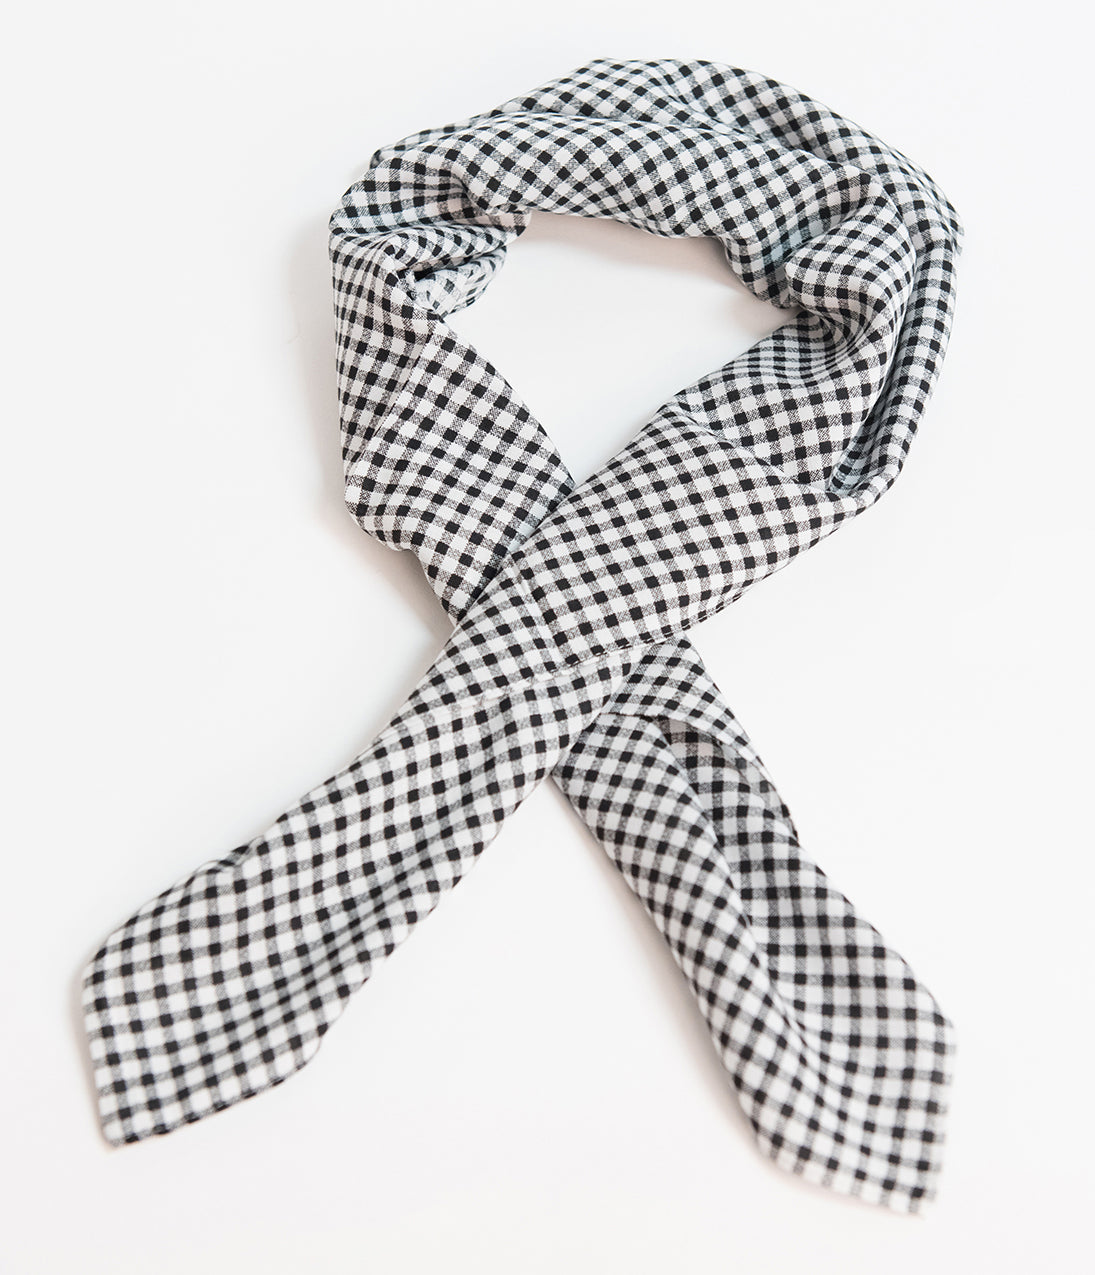 Vintage Scarves- New in the 1920s to 1960s Styles Unique Vintage Pin-Up Black  White Gingham Fabric Hair Scarf $10.00 AT vintagedancer.com